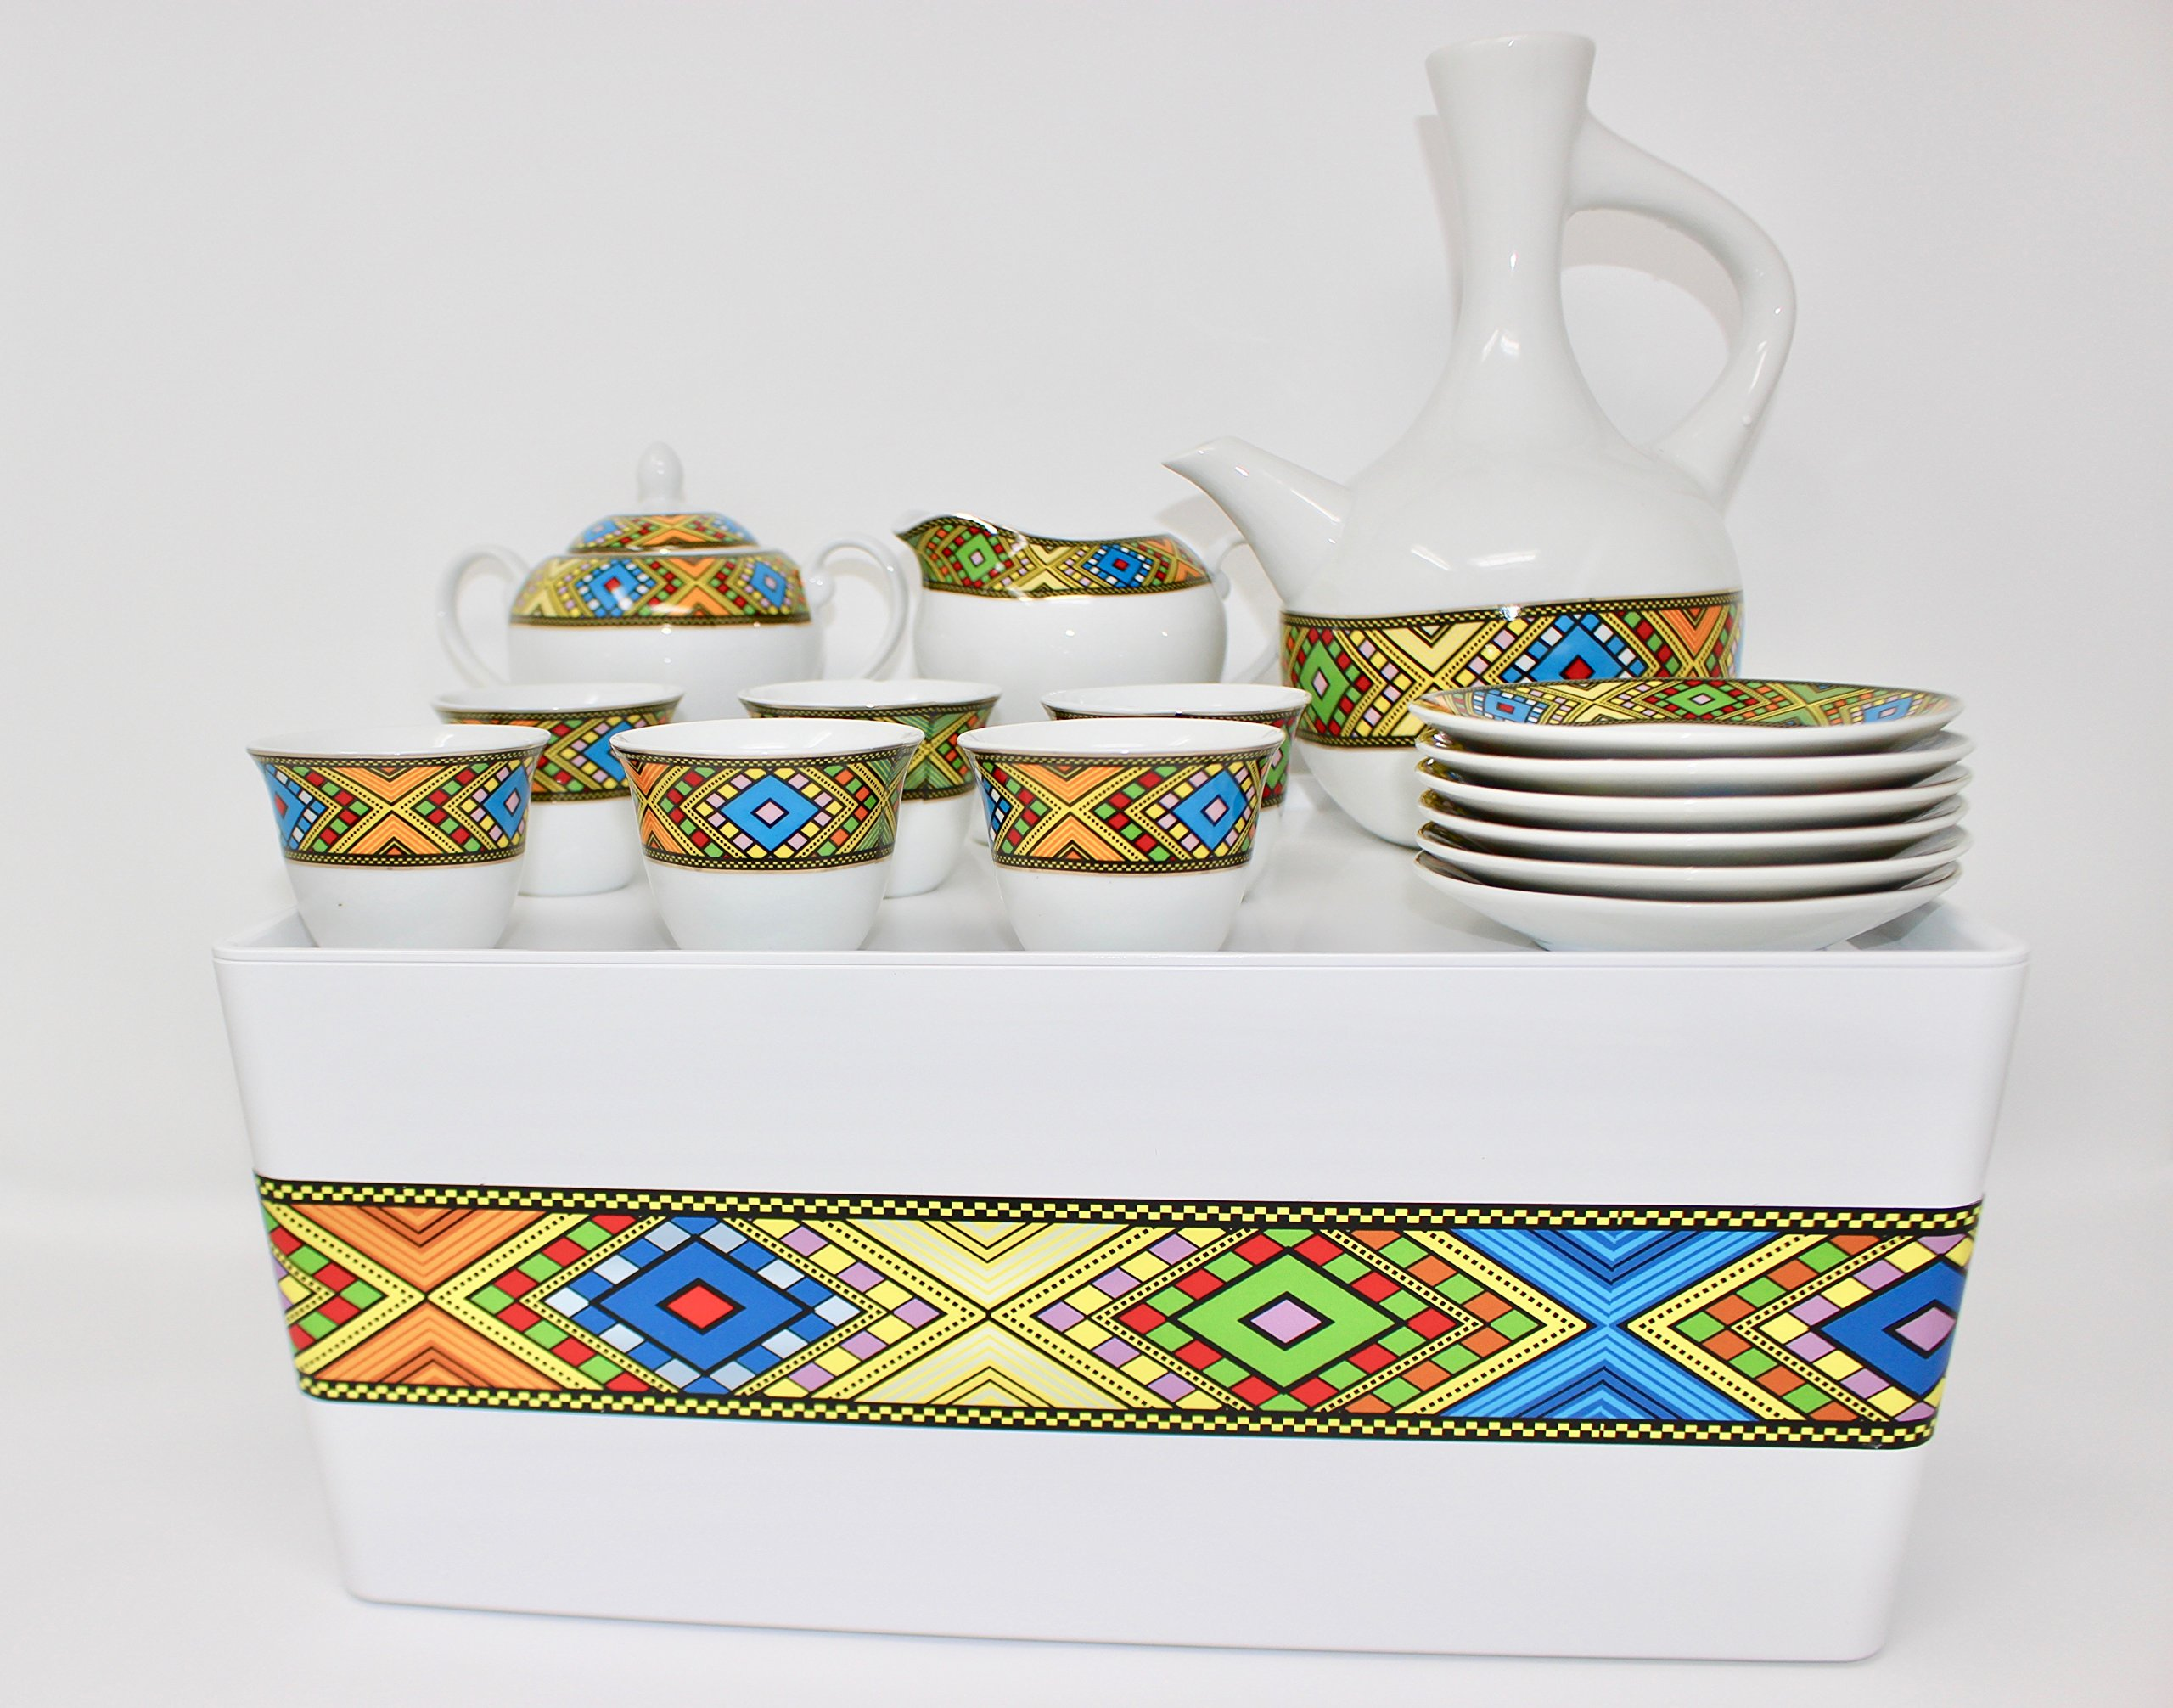 Ethiopian/Eritrean Coffee Cups with Rékébot, Abyssinian Coffee cups, Jebena, Rekebot, Ethiopian art, Eritrean Coffee, Habesha Coffee, Ethiopian Coffee ceremony, Full coffee Set by EthioDesigns (Image #1)